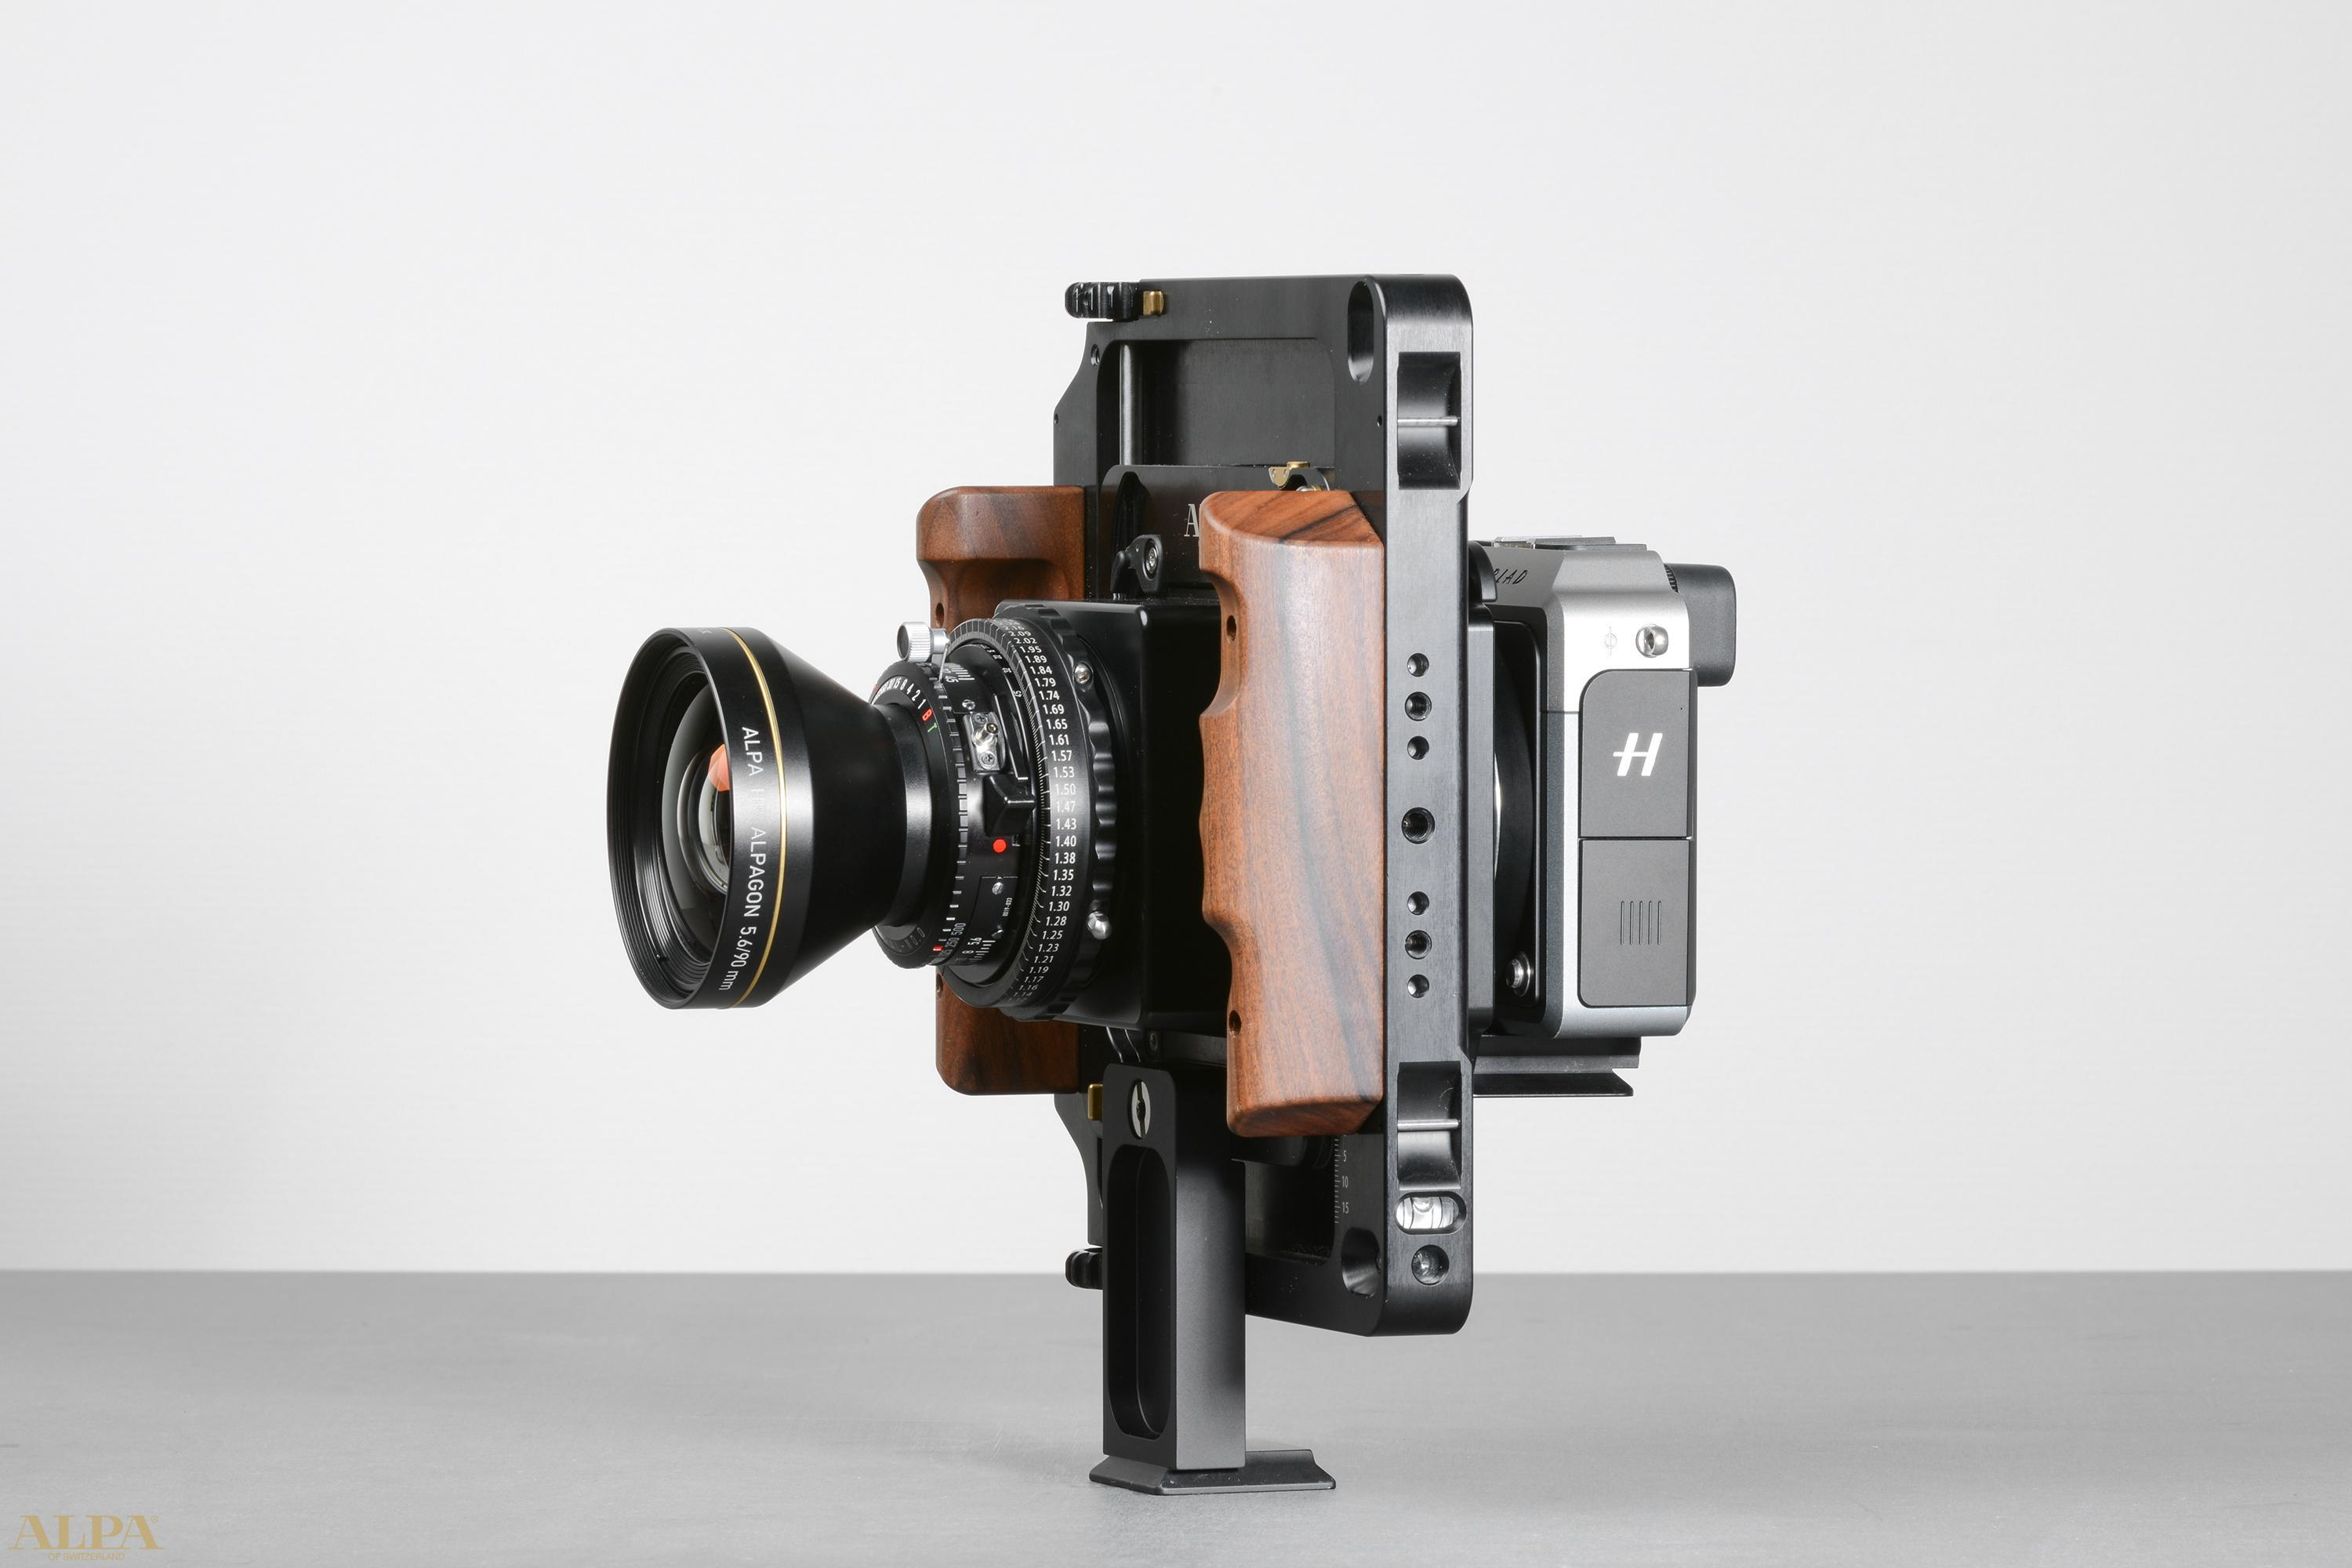 Alpa's HXD adapter lets you mount Alpa lenses on Hasselblad's 50MP